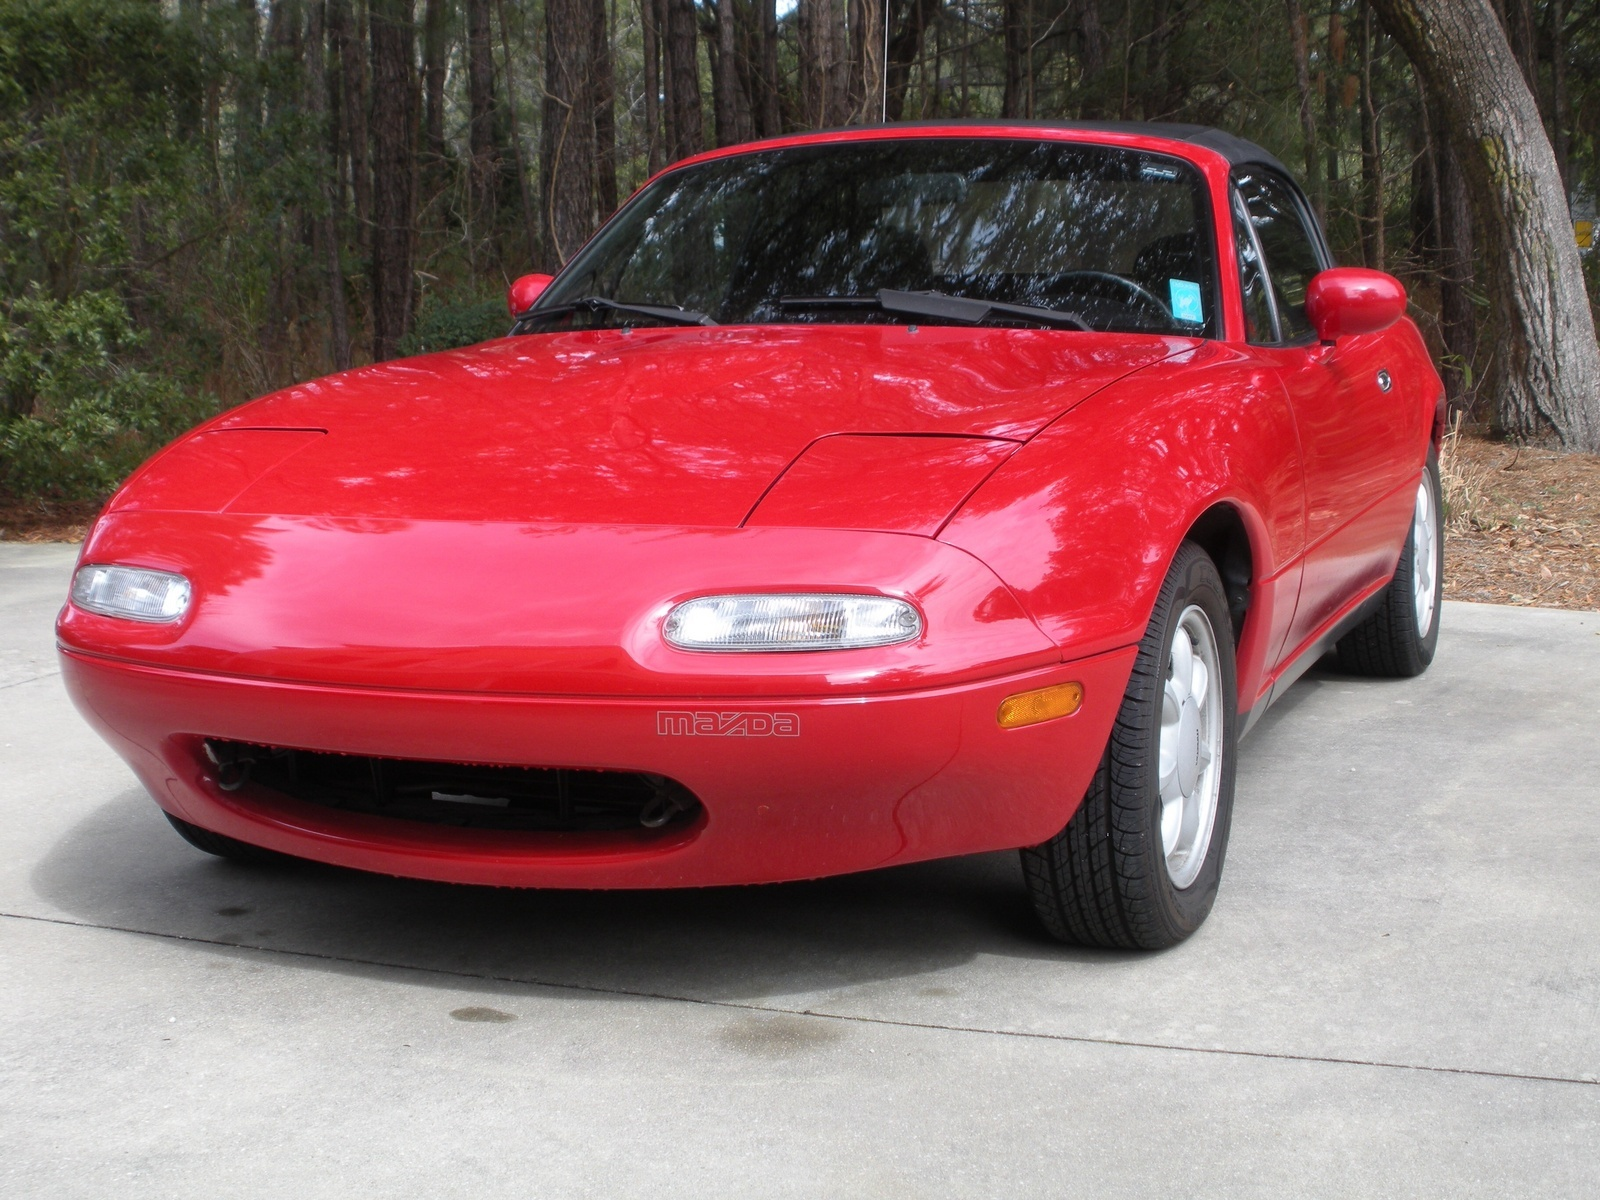 mazda mx-5 miata questions - how do i value and sell low mileage